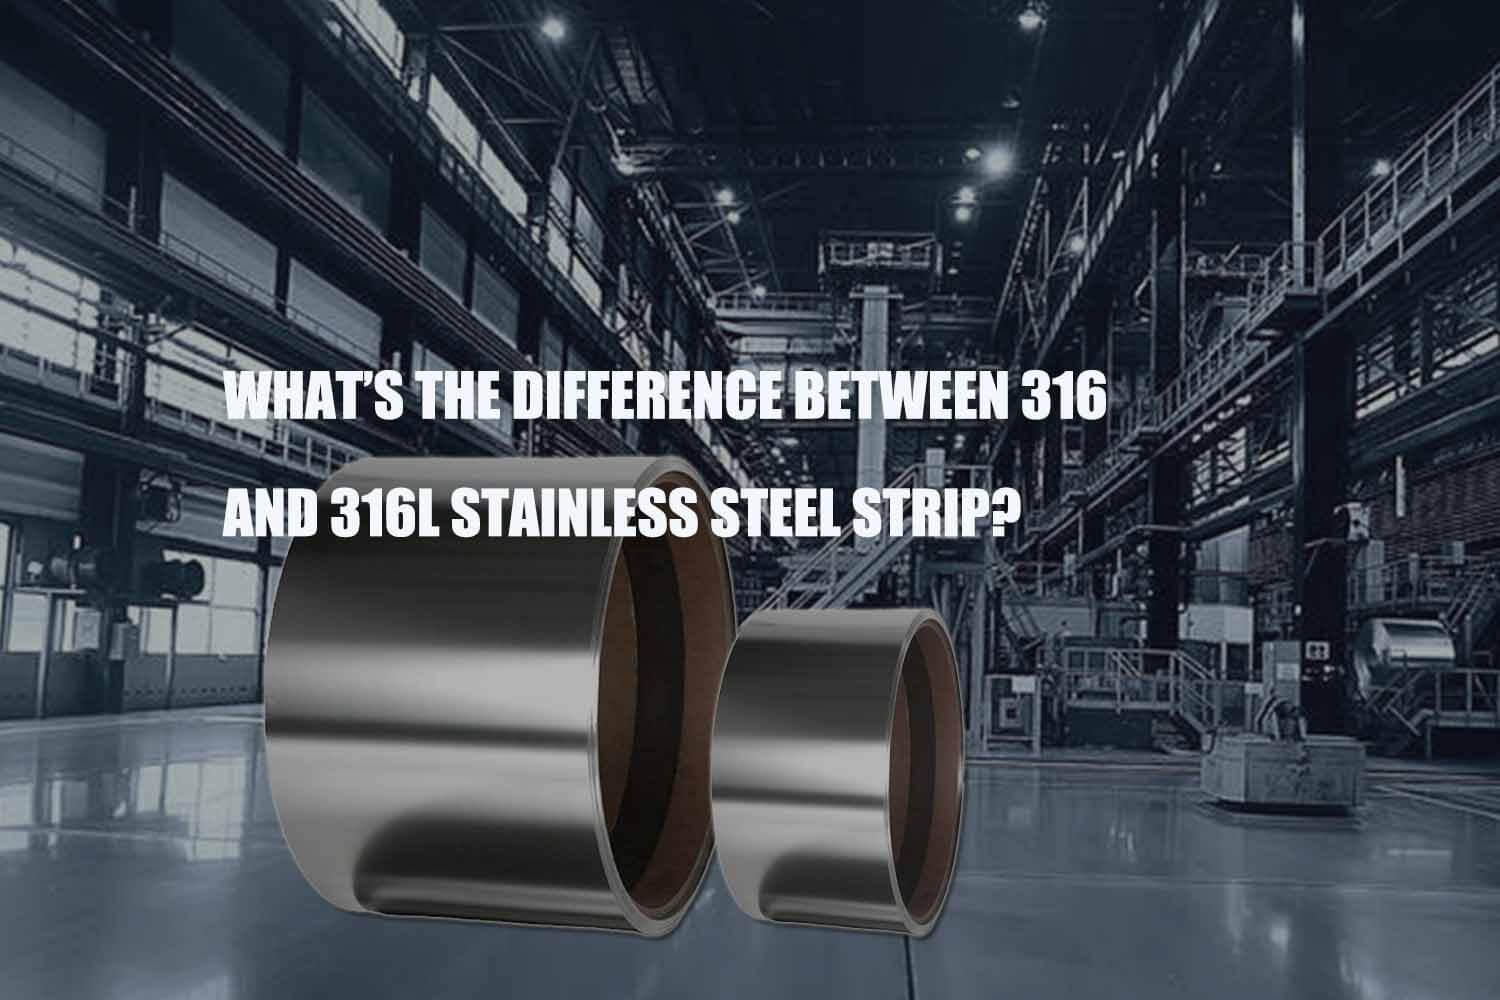 the-difference-between-316-and-316l-stainless-steel-strip